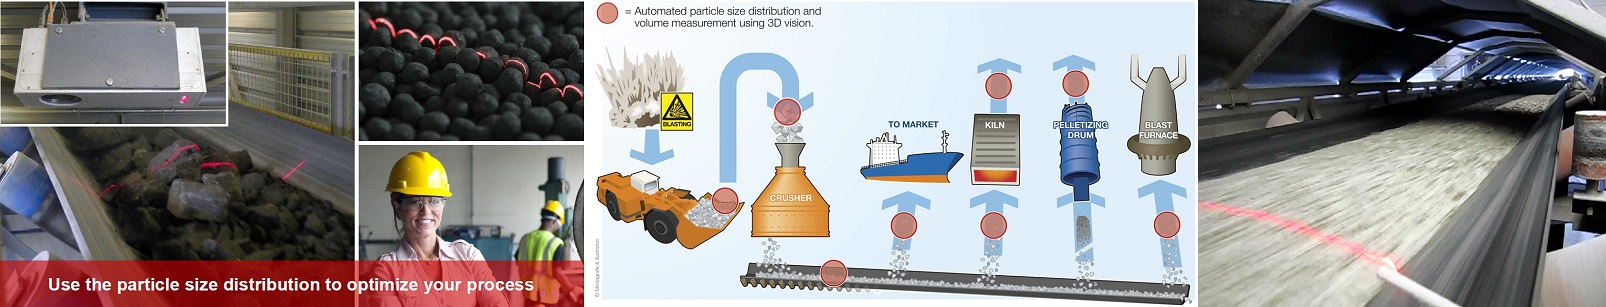 autoamted, onine, non-contact measurement of the particle size distribution using 3D imaging